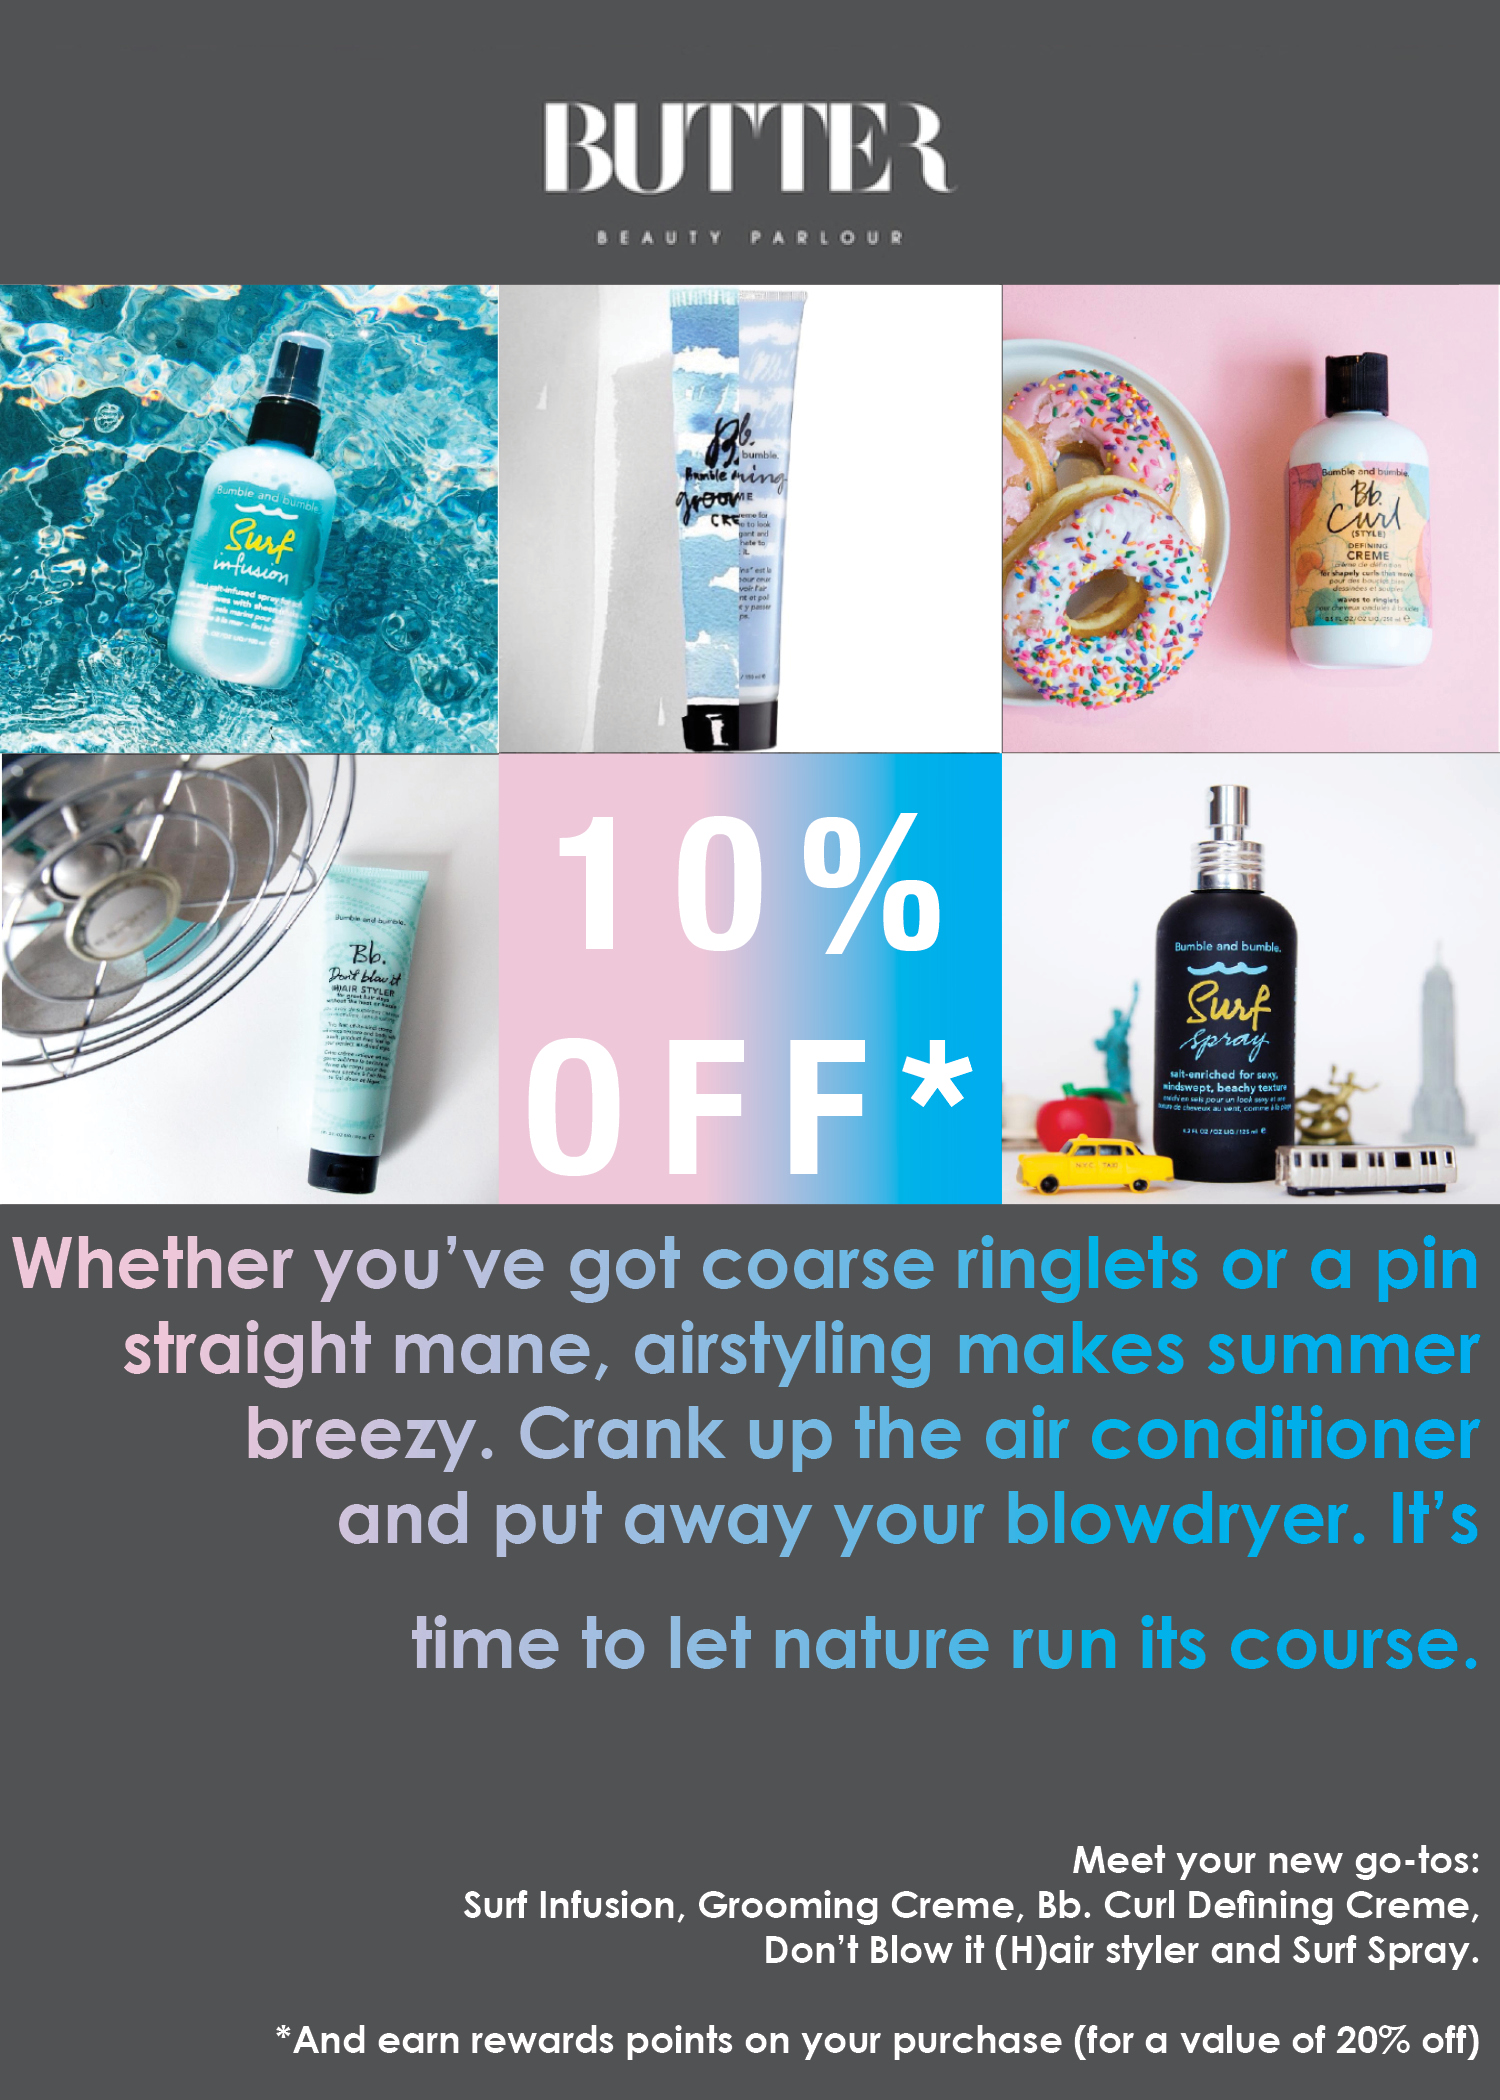 *Applies only to full-sized products, cannot be combined with any other offers